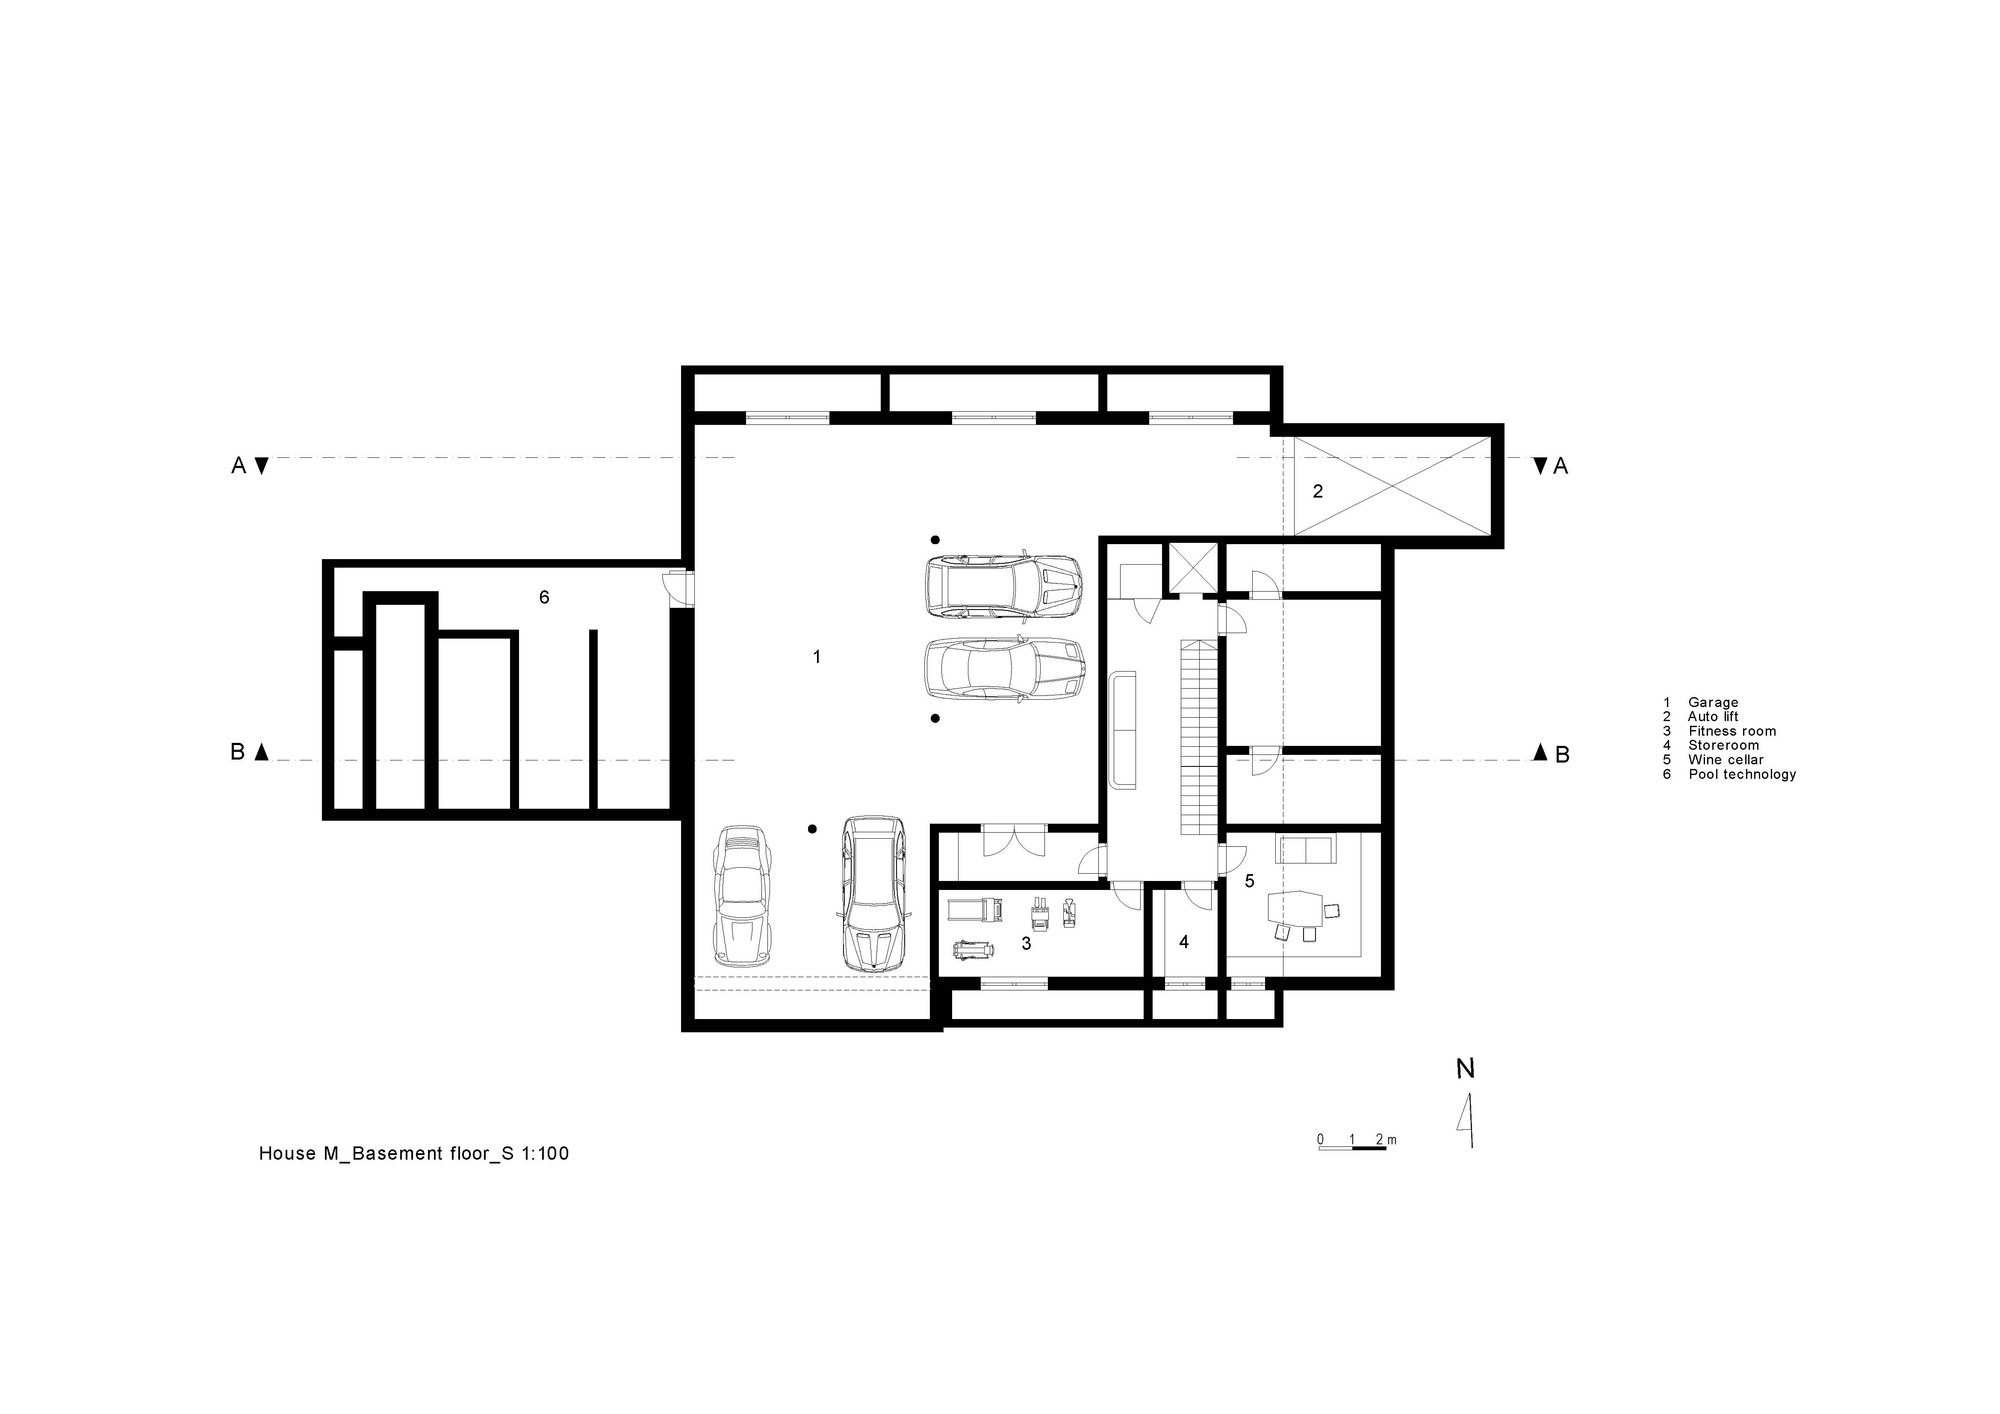 Gallery of house m monovolume architecture design 42 for Architectural plans